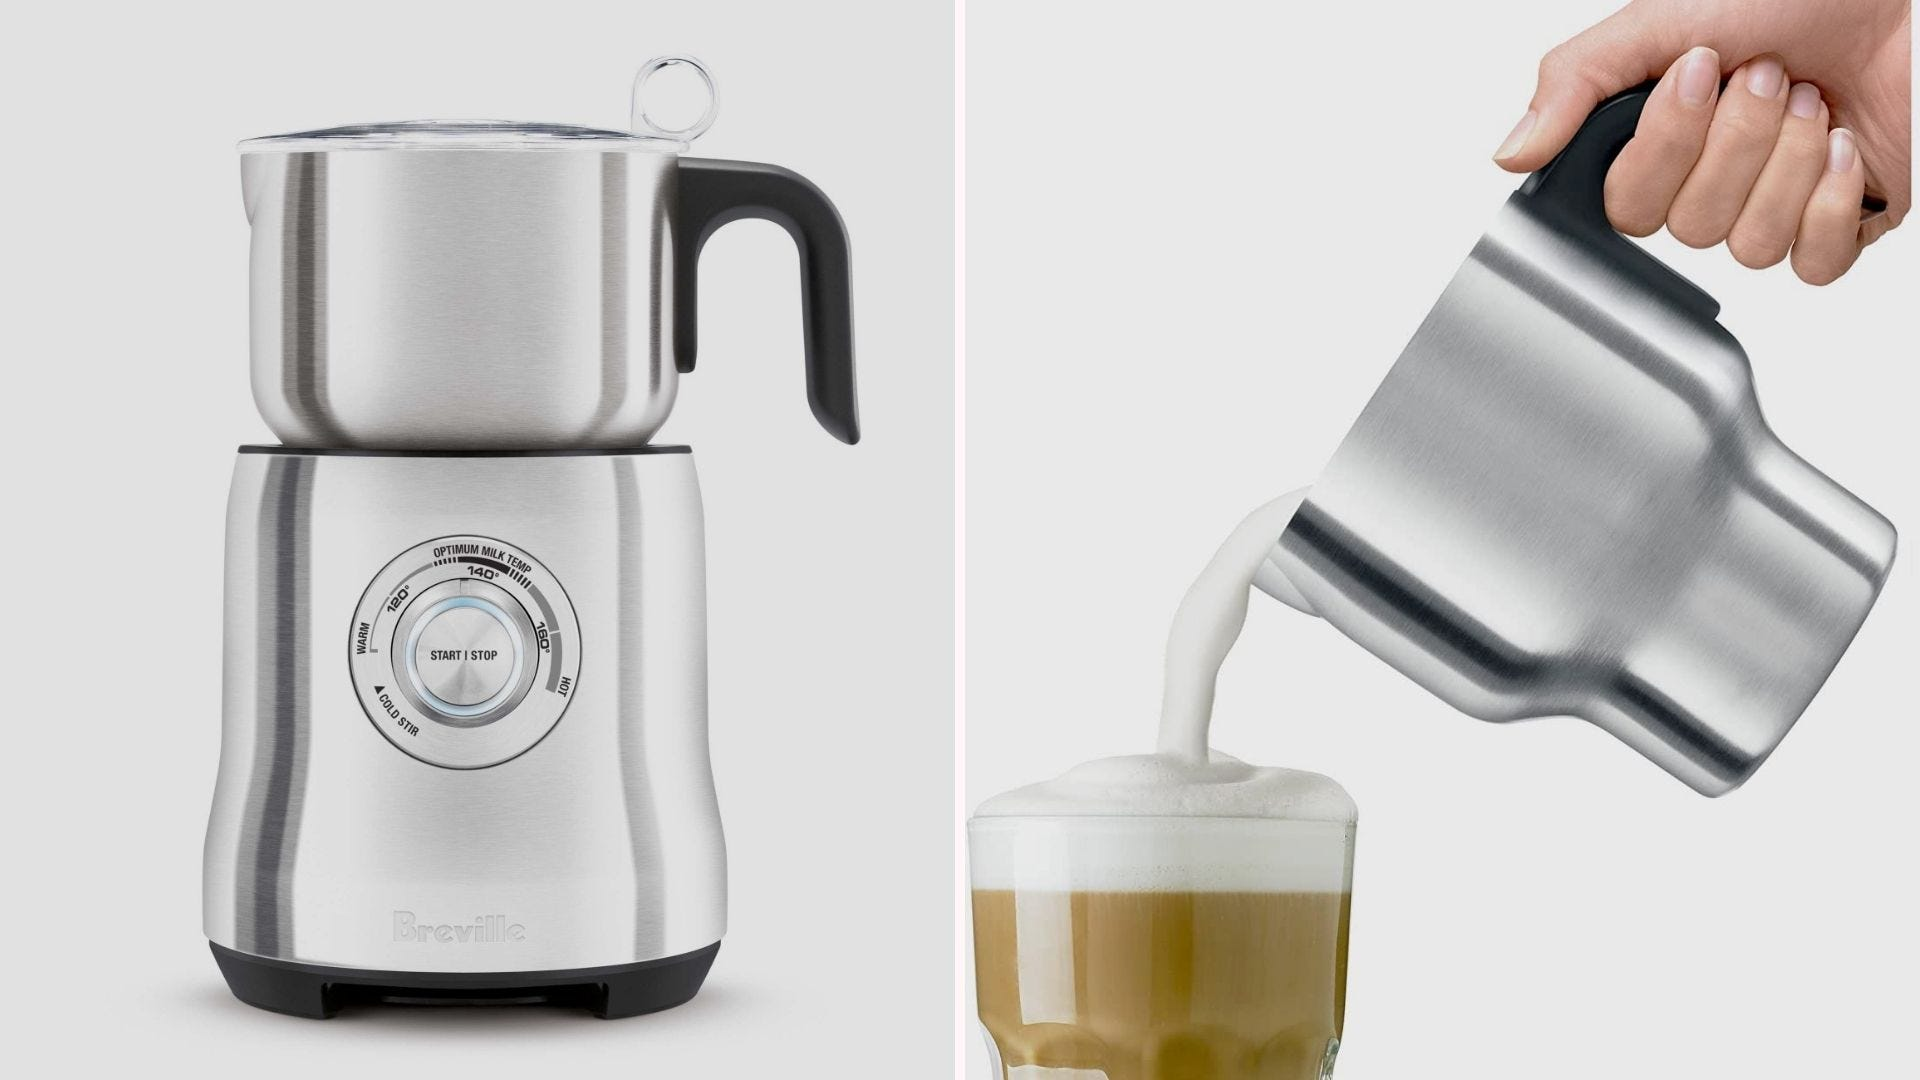 A silver milk frother; a hand pouring frothed milk into a cup of coffee